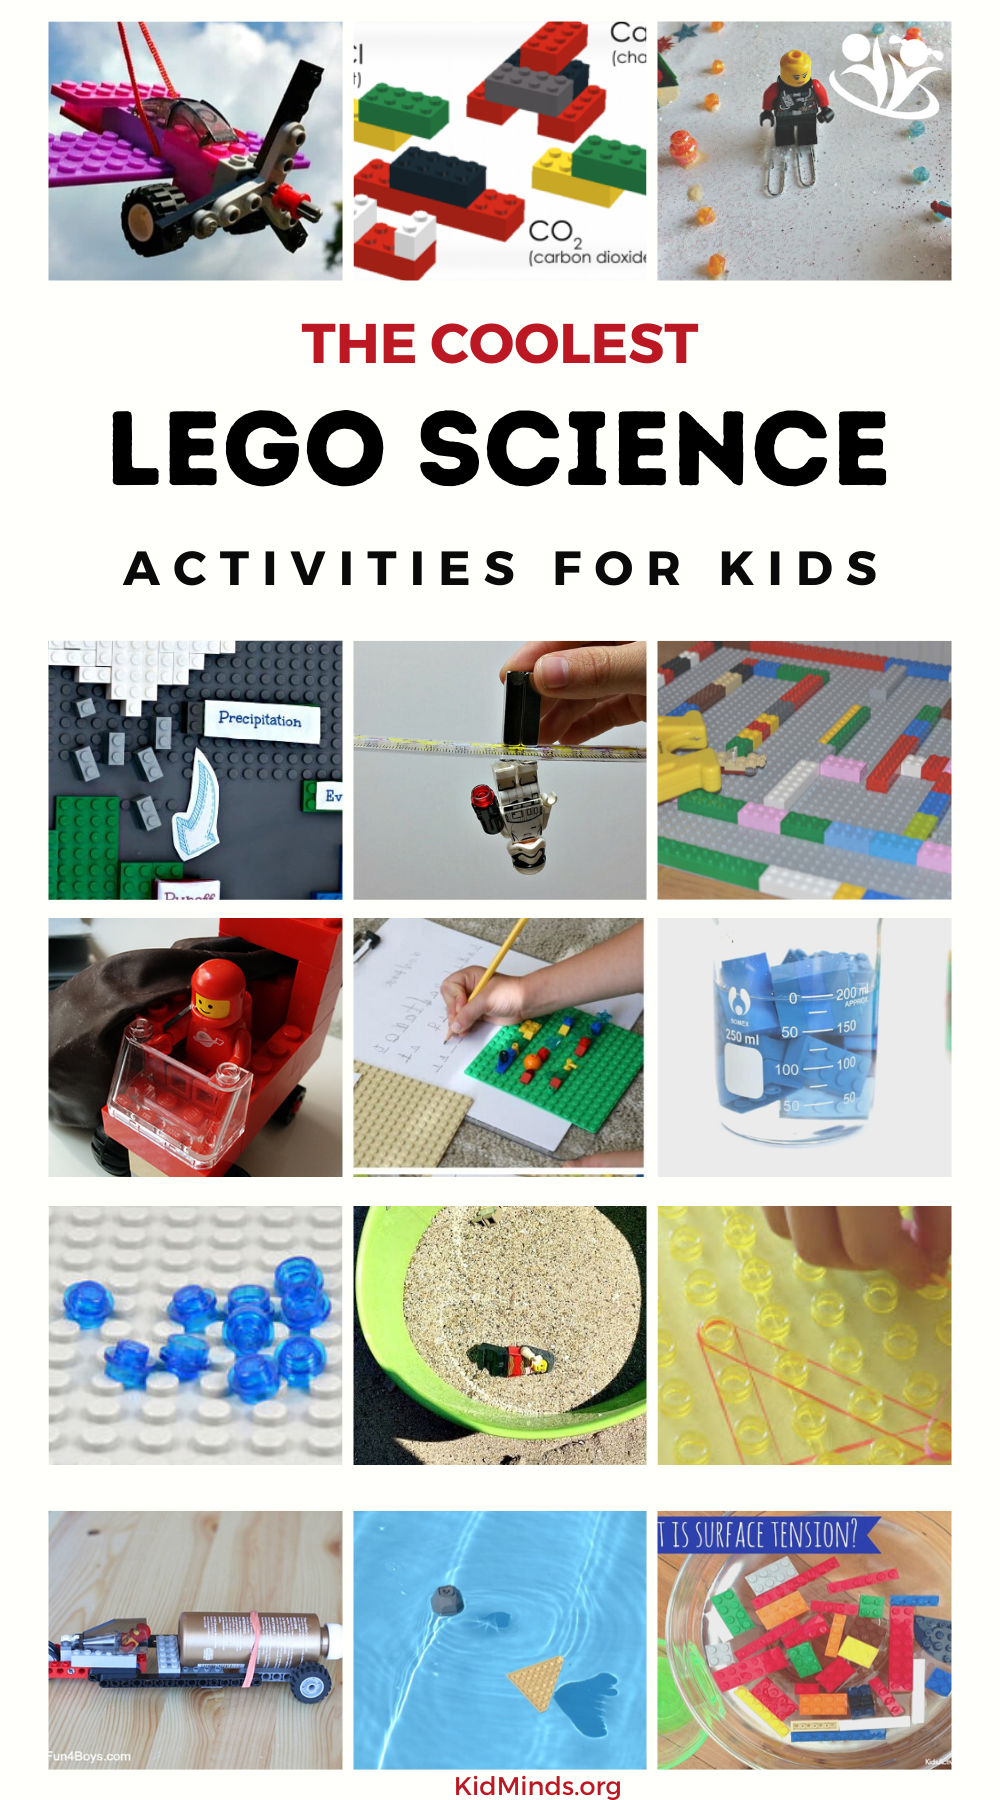 LEGO STEAM ideas. Little kids are born scientists: driven by a natural curiosity and a desire to figure out how the world works. #STEAM #LEGO  #kidsactivities #kidminds #handsonlearning